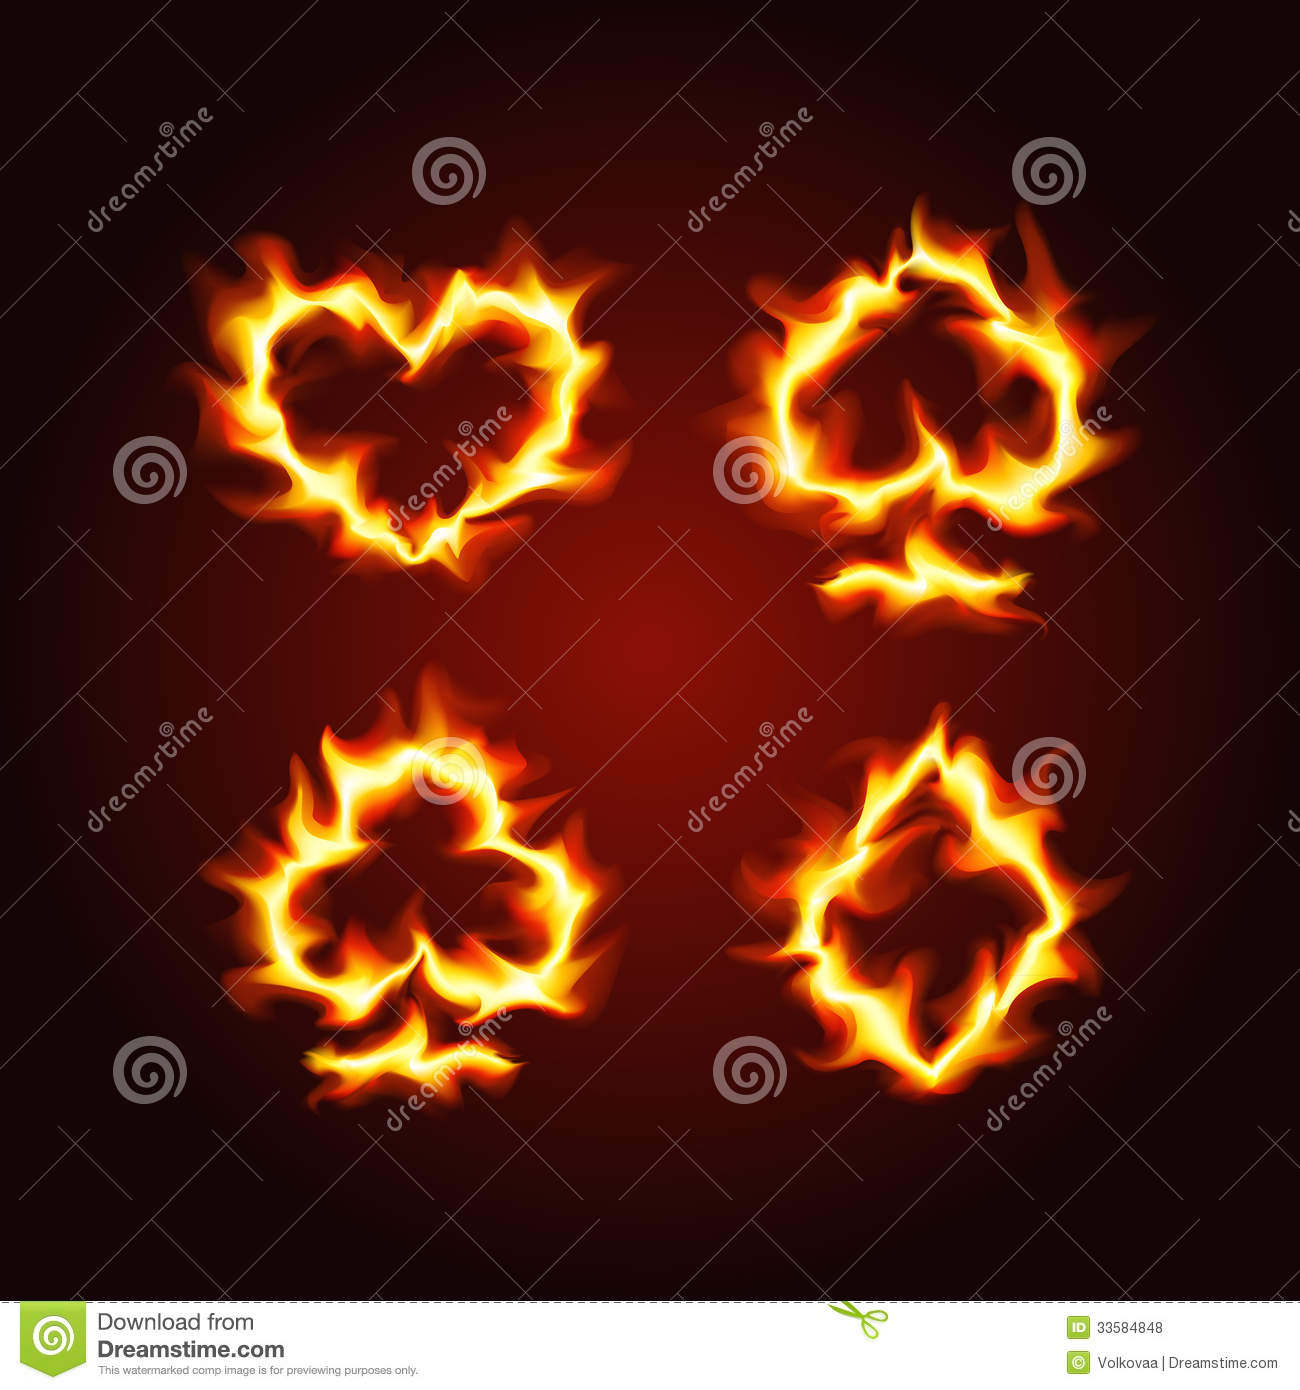 Laptop Quote Wallpaper Playing Card Suits On Fire Royalty Free Stock Photos